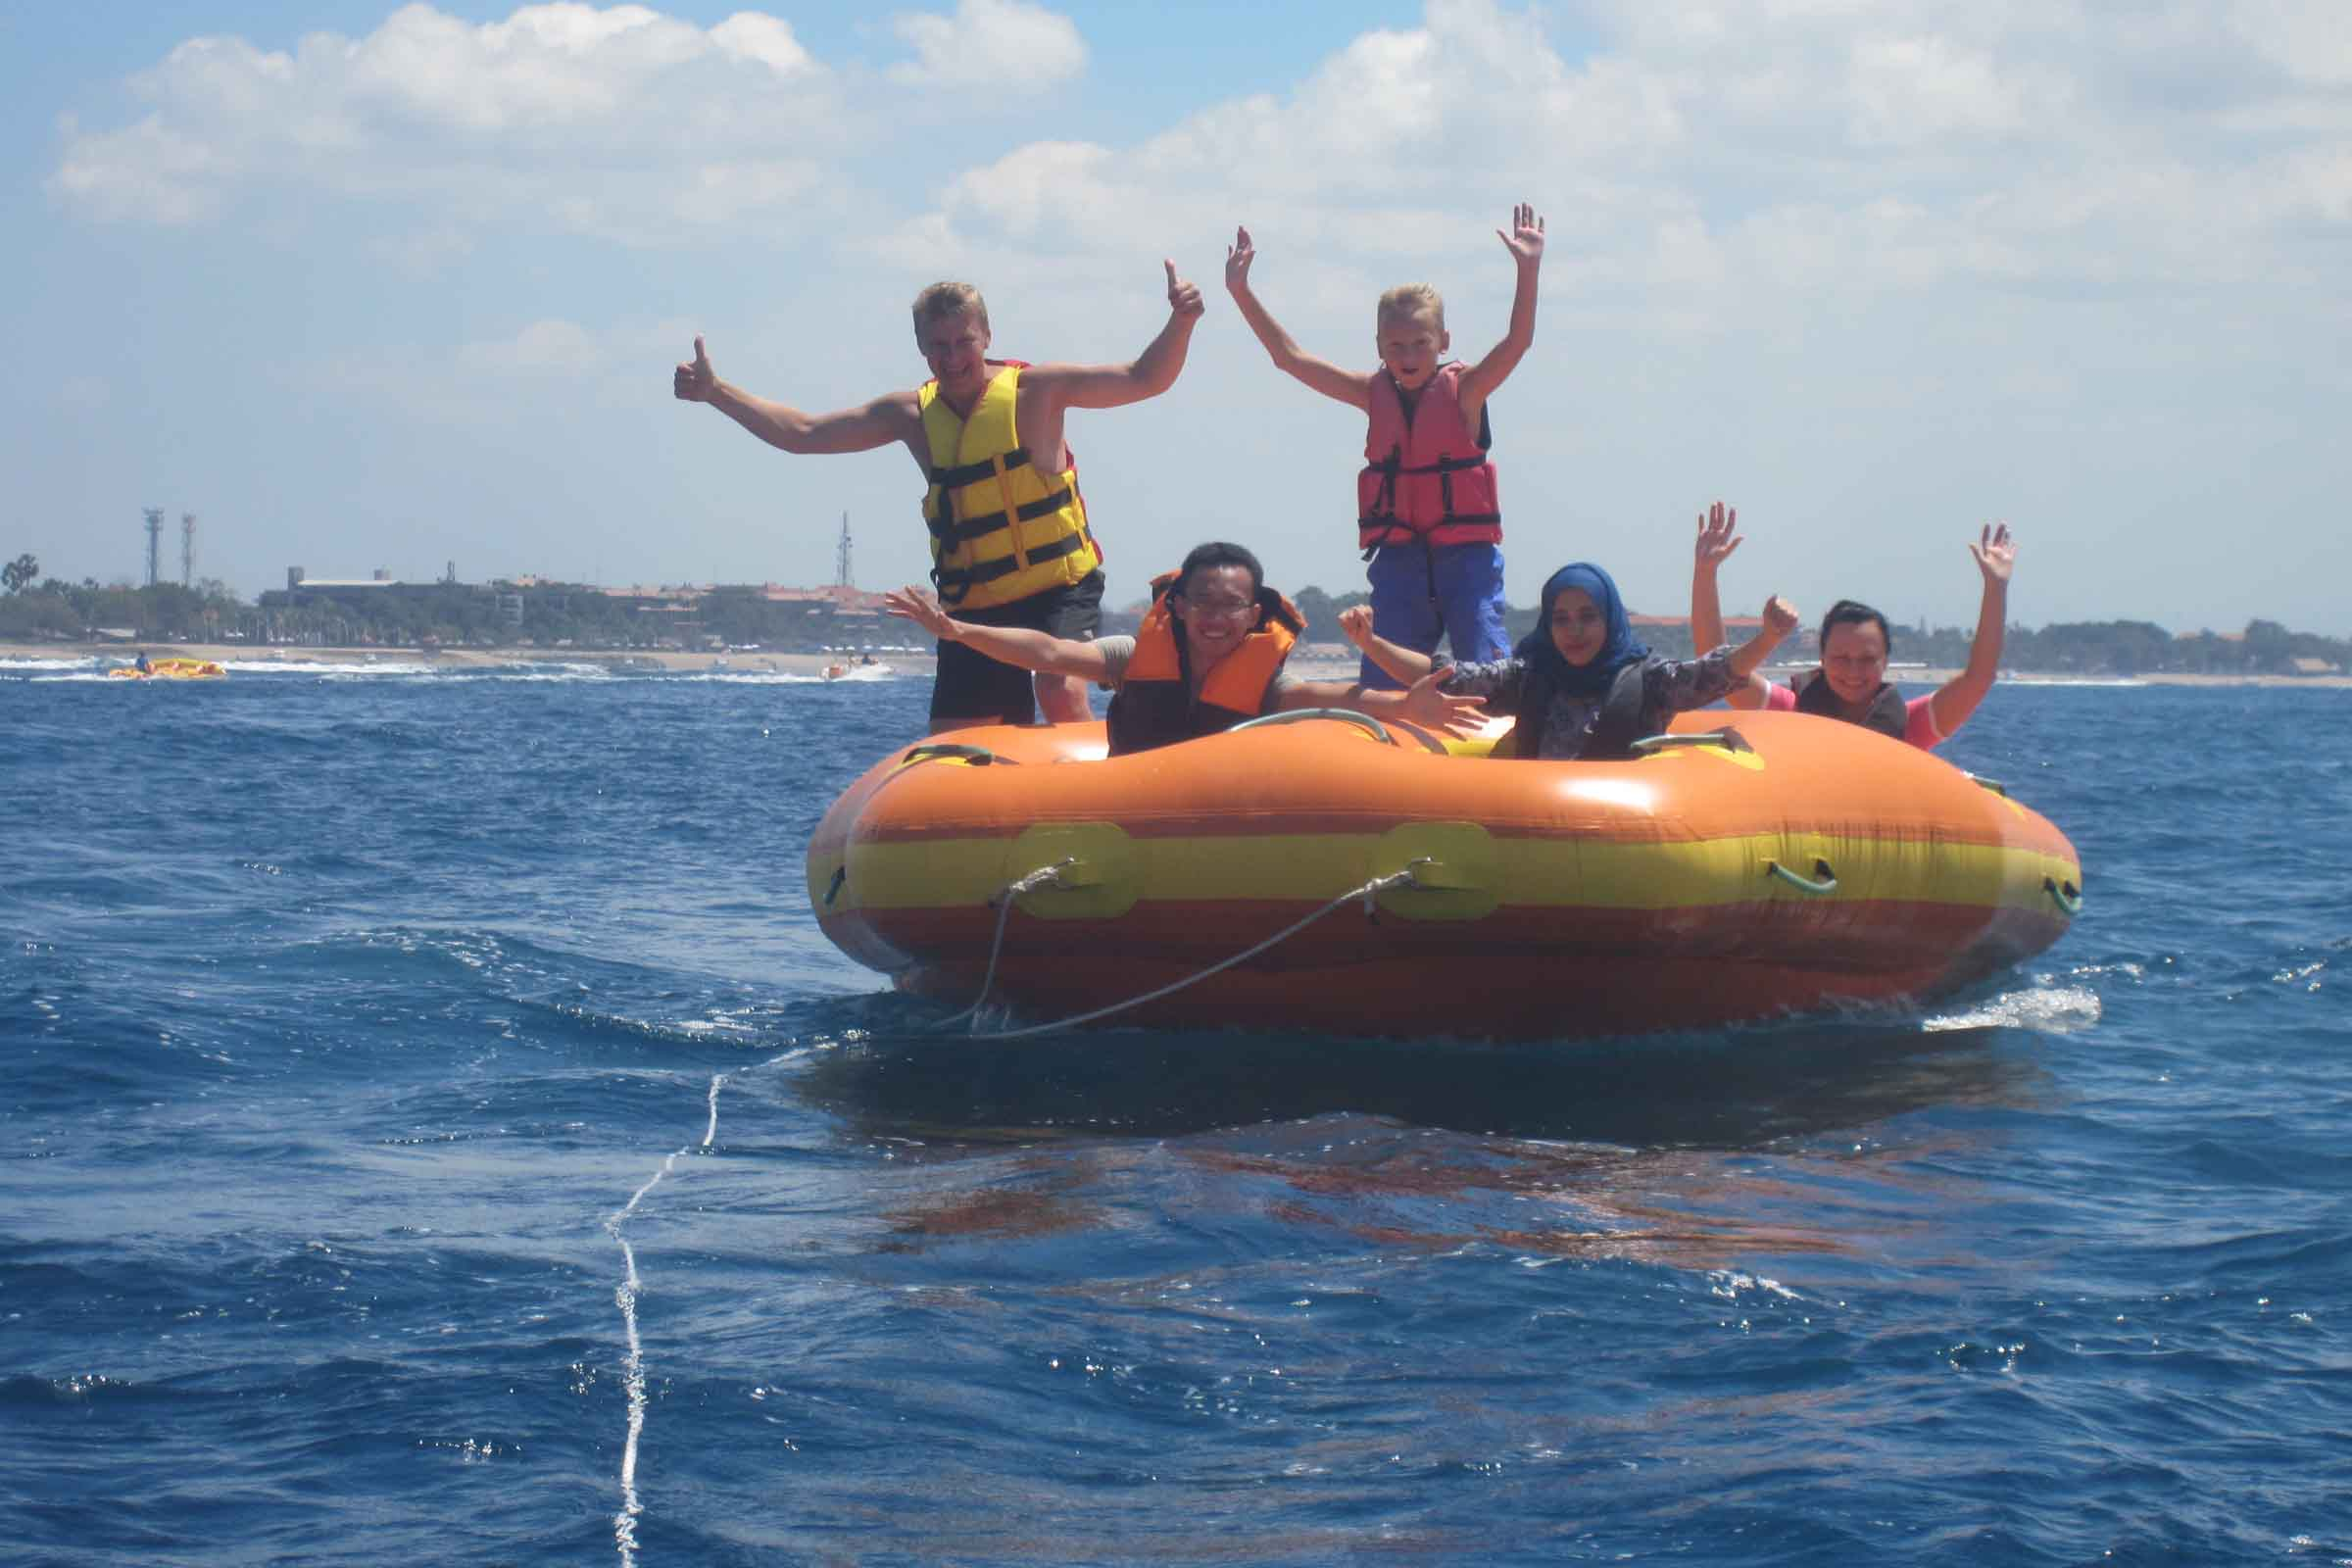 BOOK ONE DAY BEFORE!!!Min - 2 Pax - (15 minutes)TubingAs with anything involving water, high speeds and heady thrills, safety is of primary concern, and the popular water sport of tubing is certainly